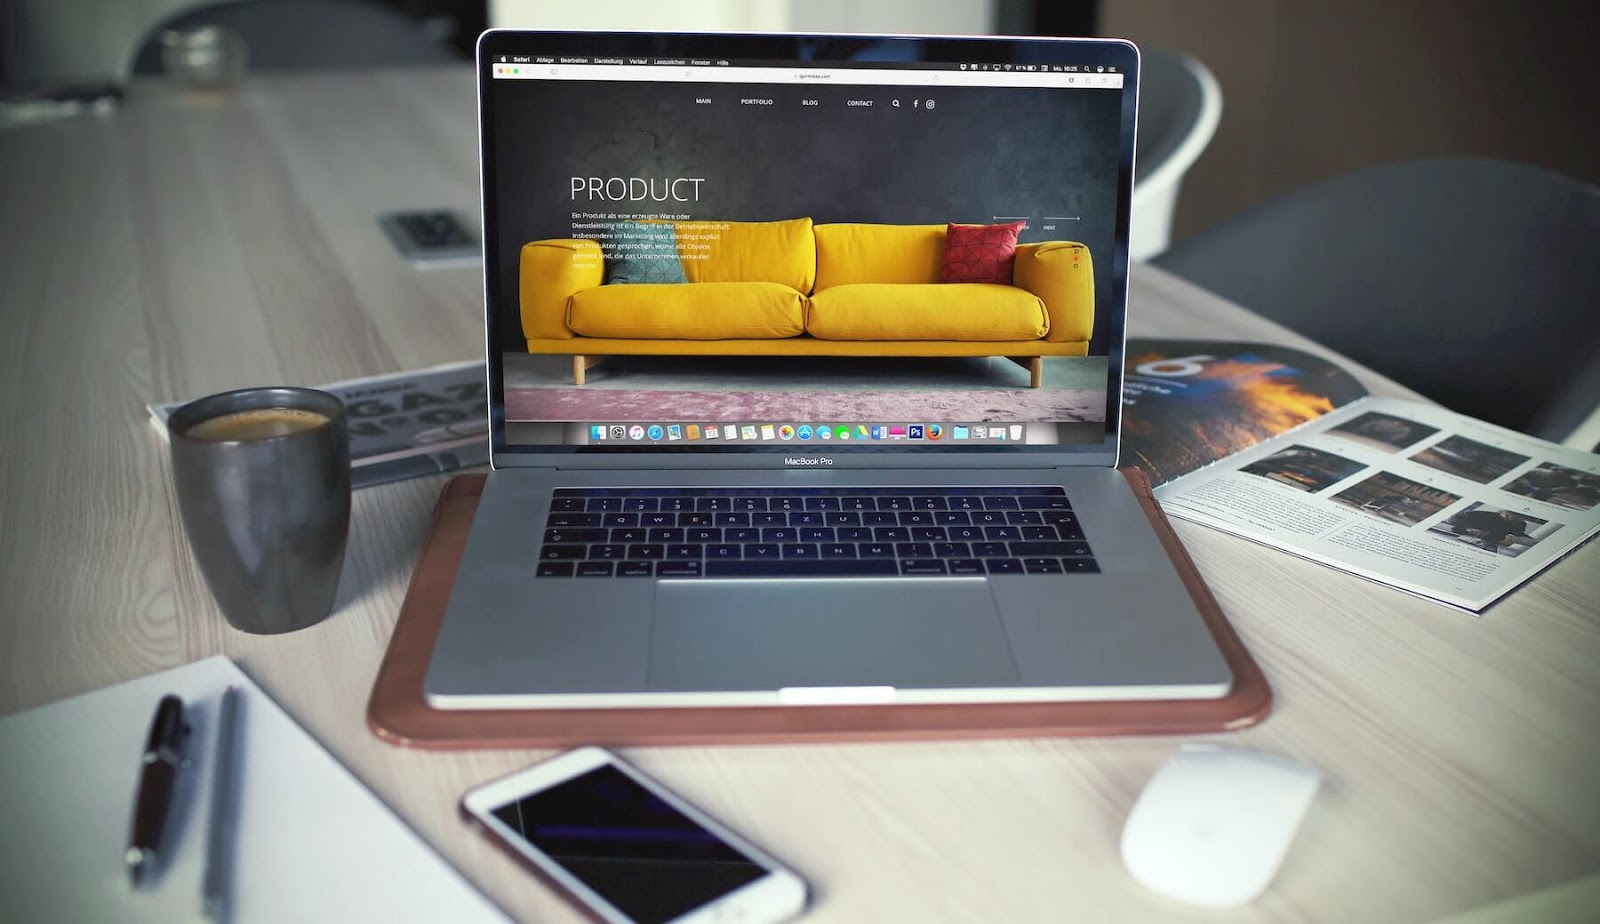 6 Reasons Why Your Product Page Sucks